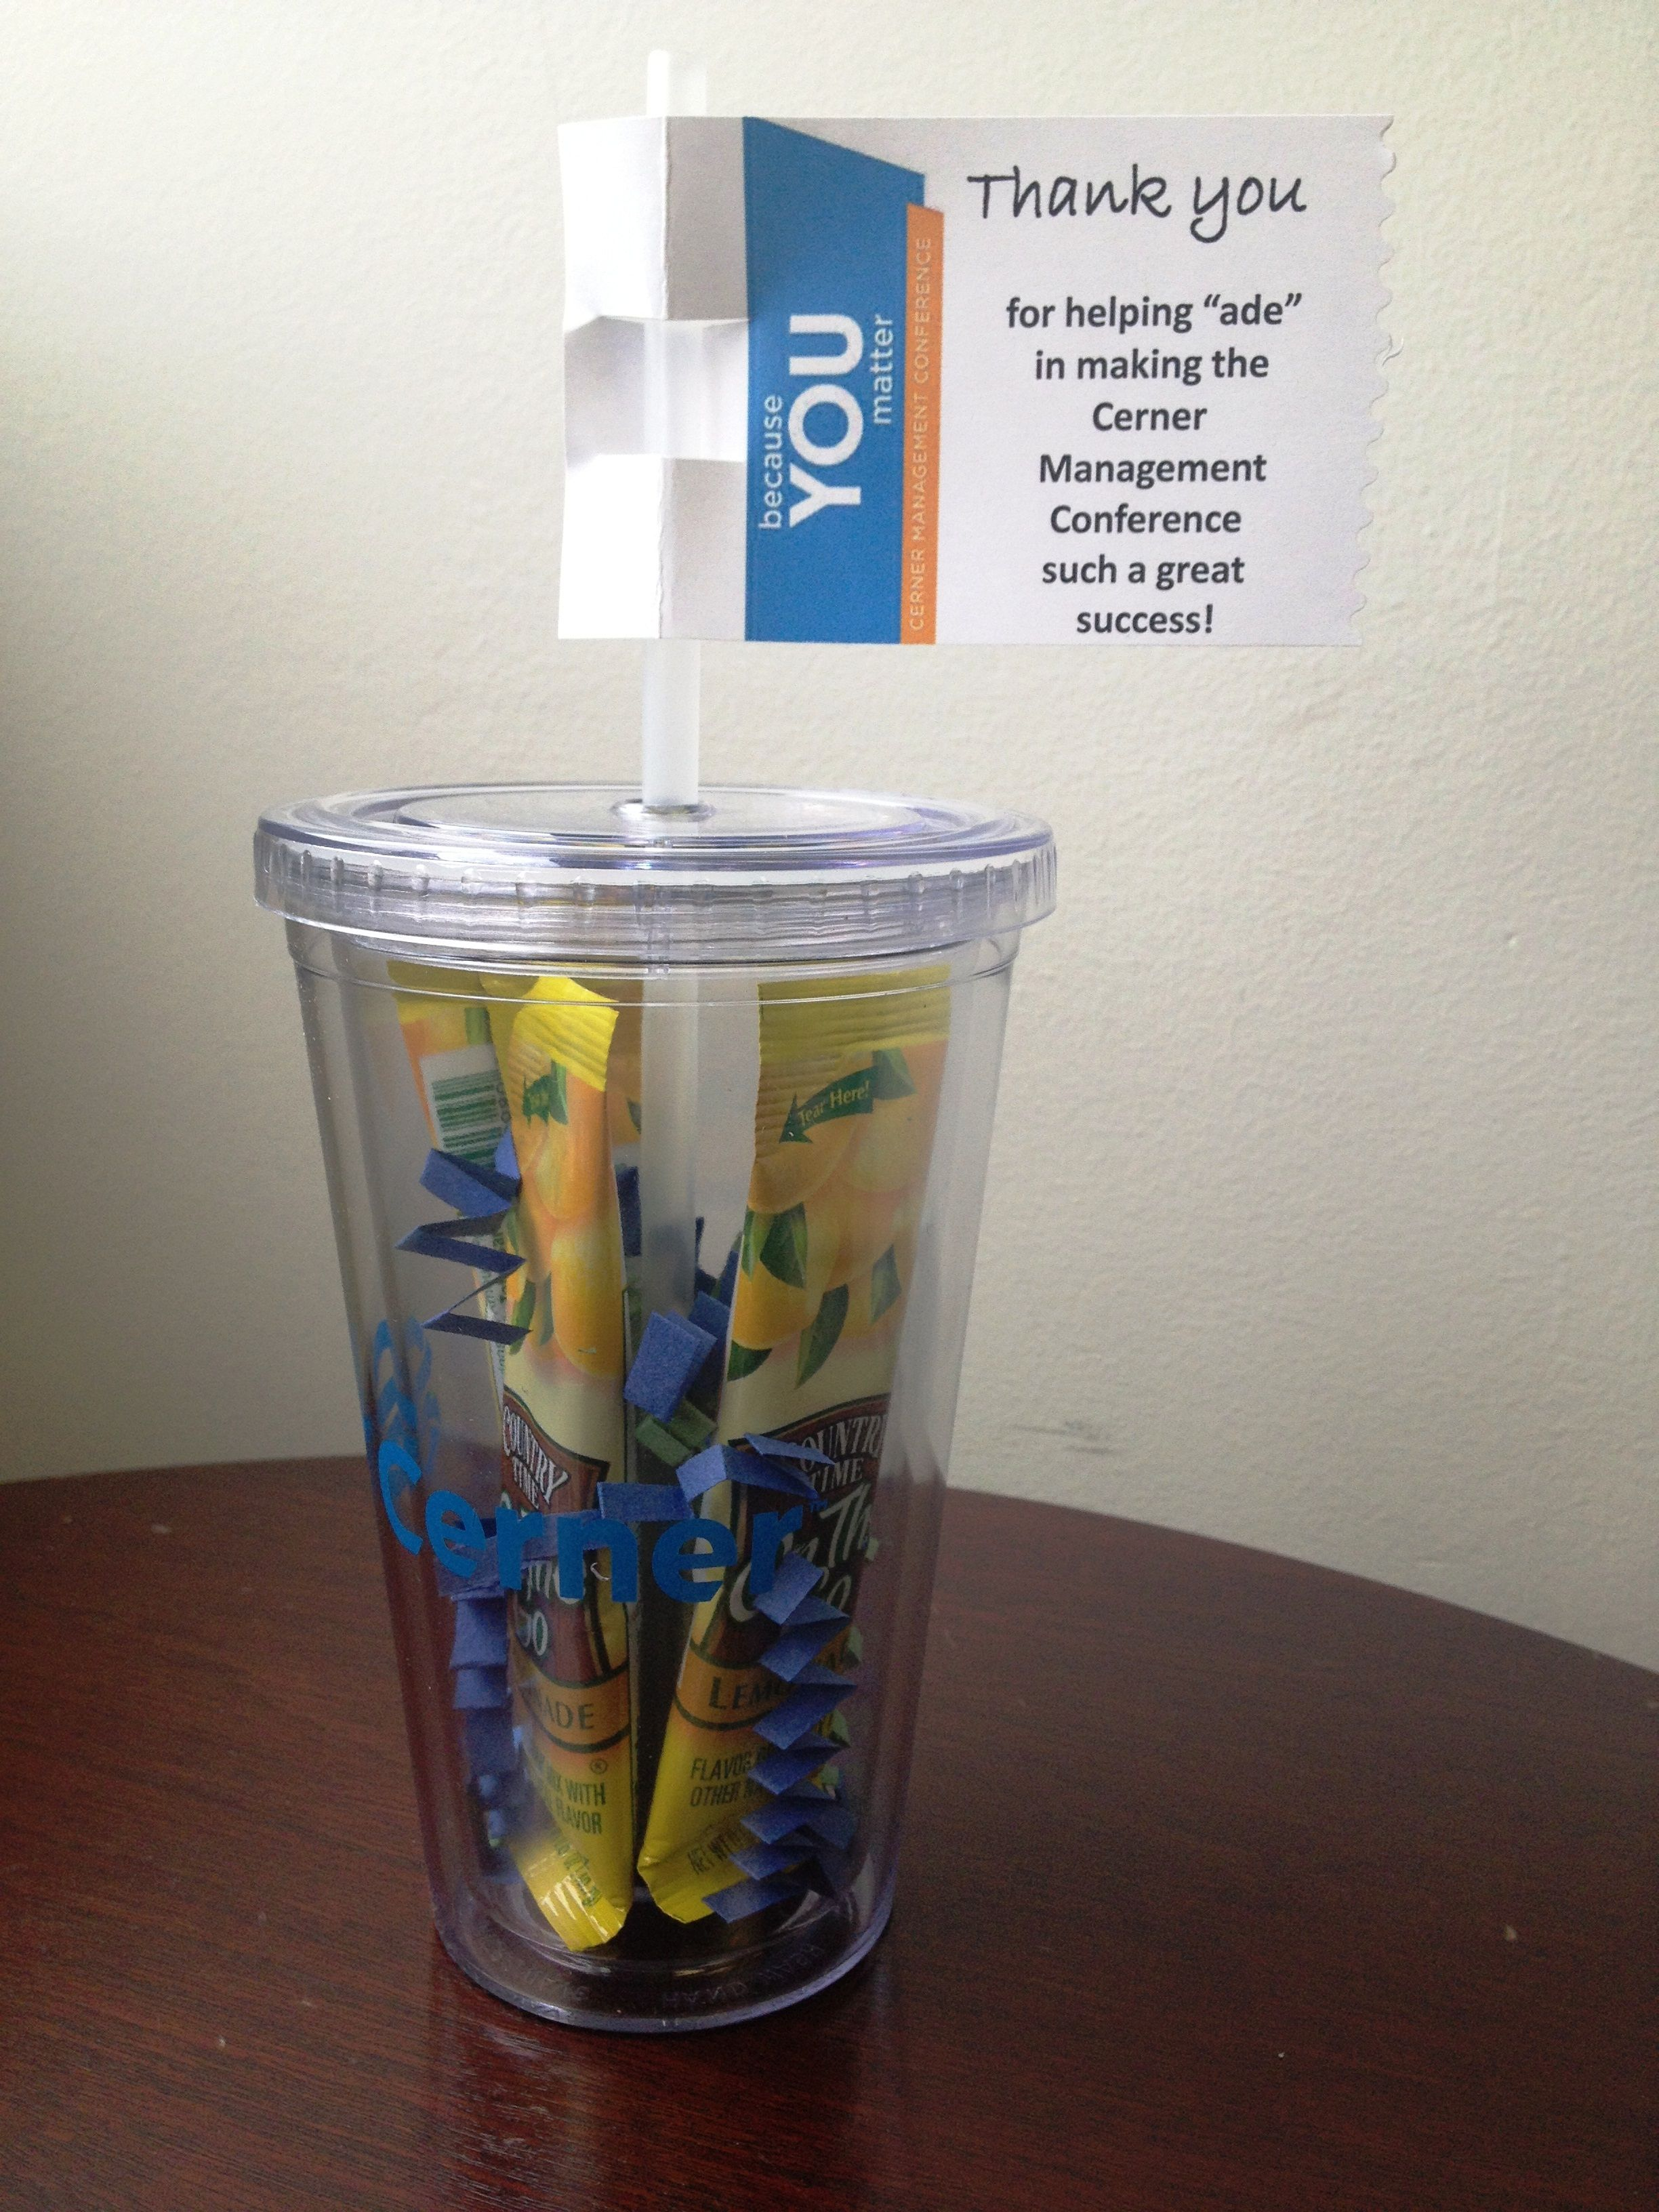 """Employee Recognition / Associate Recognition :  """"Thank you for helping """"ade"""" in making the event a success"""".  Cup filled with lemonade."""